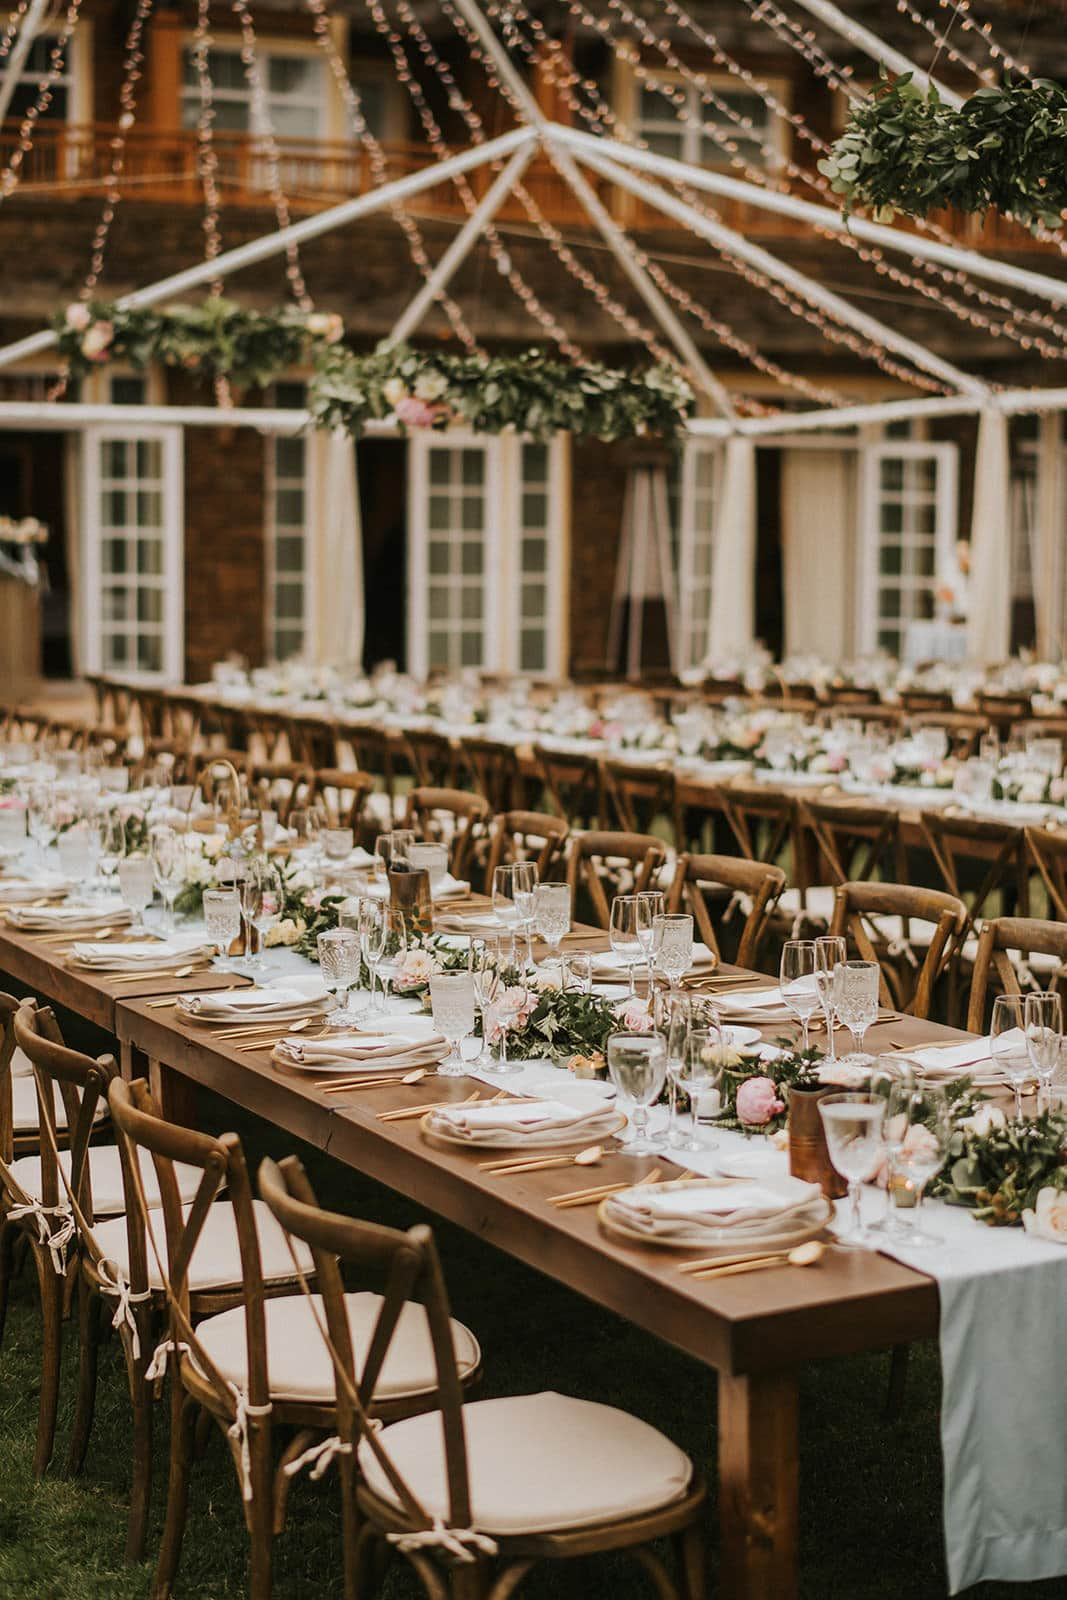 rustic outdoor boho table setup at wedding